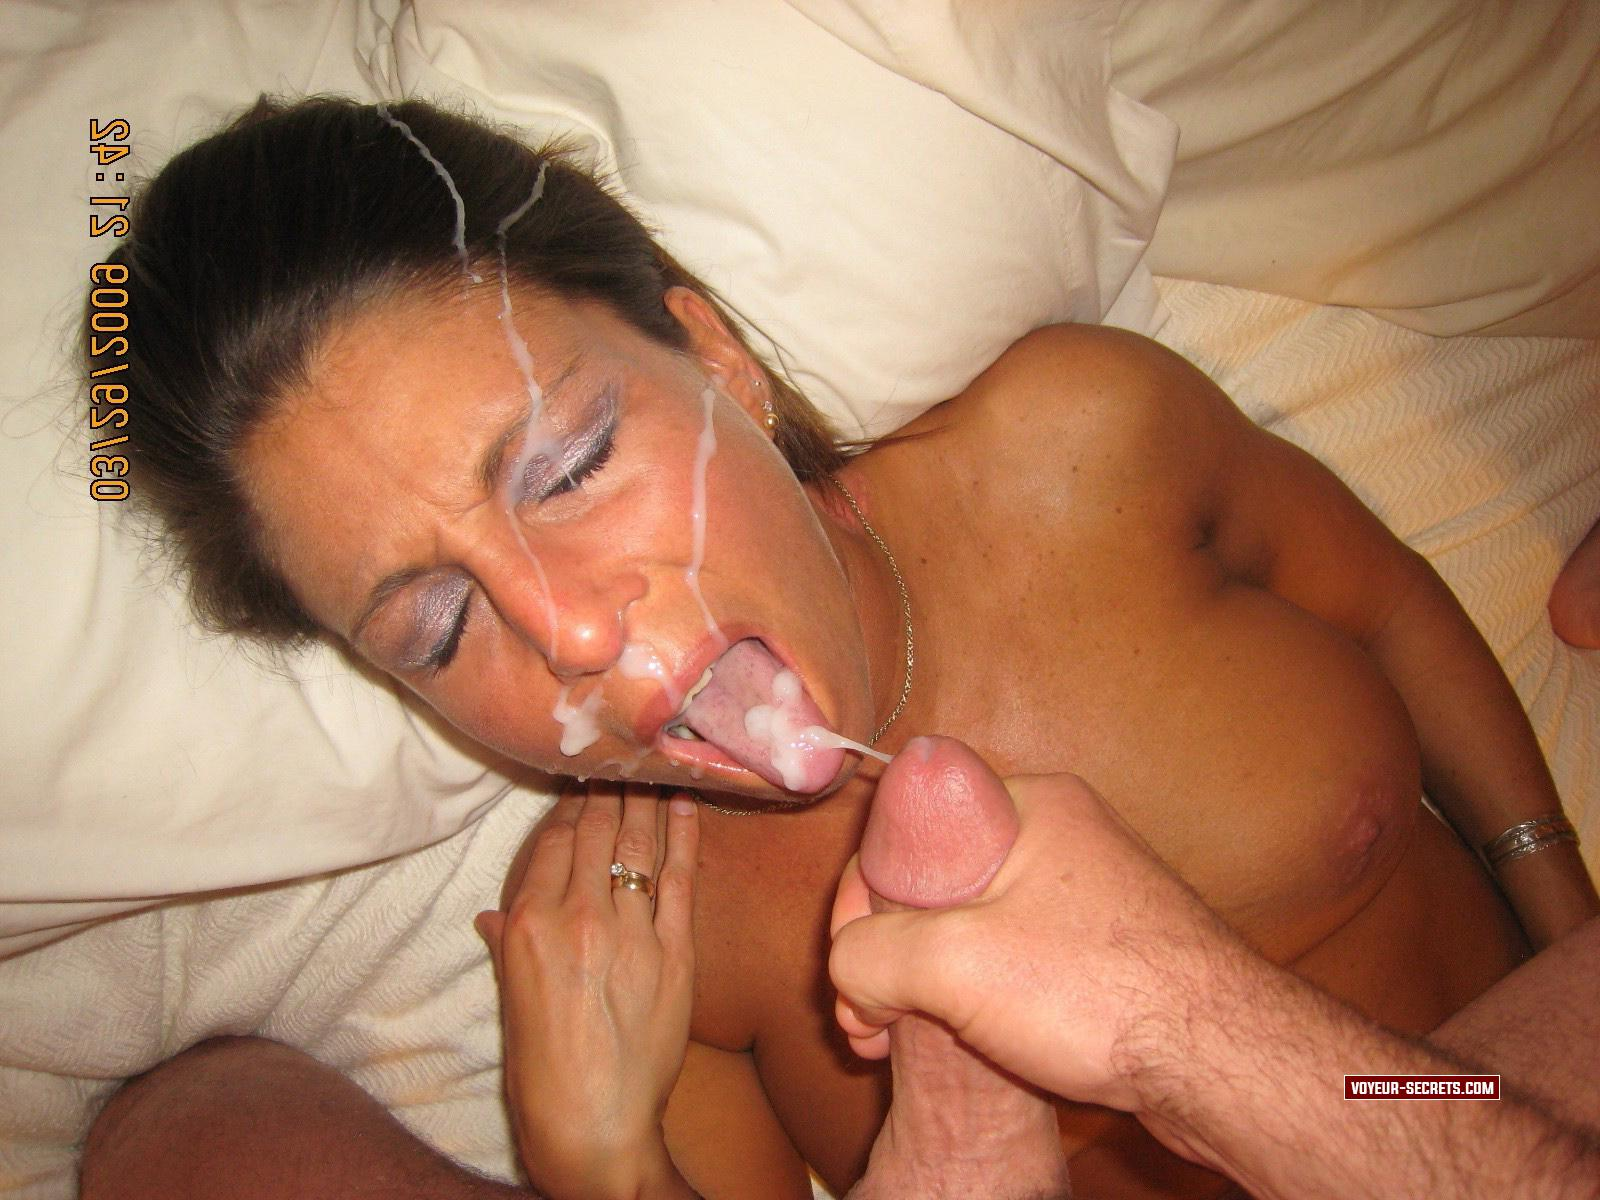 Milf cum oral overload, lesbo girls bloody pussy pics